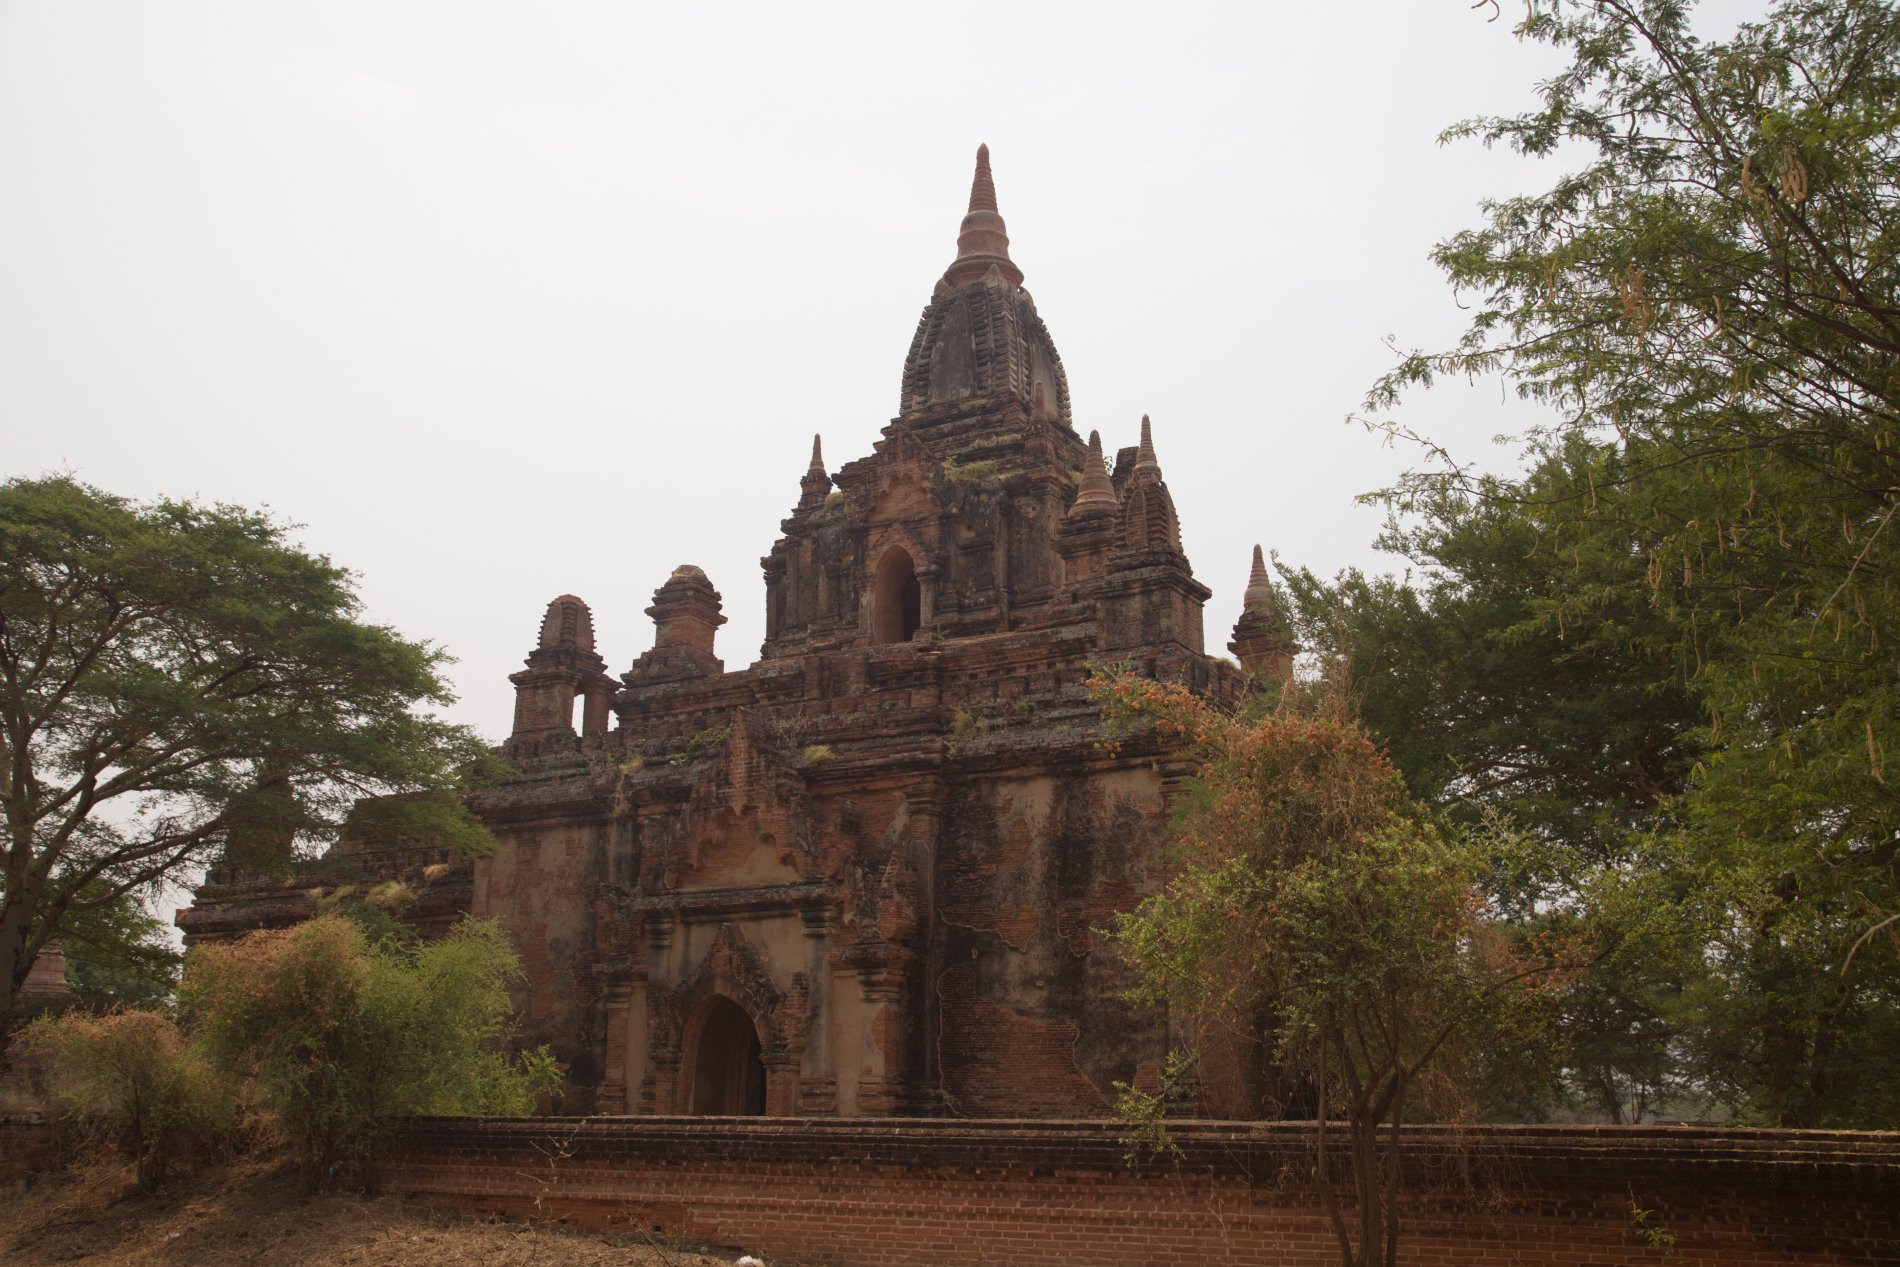 Bagan_142.jpg-commment